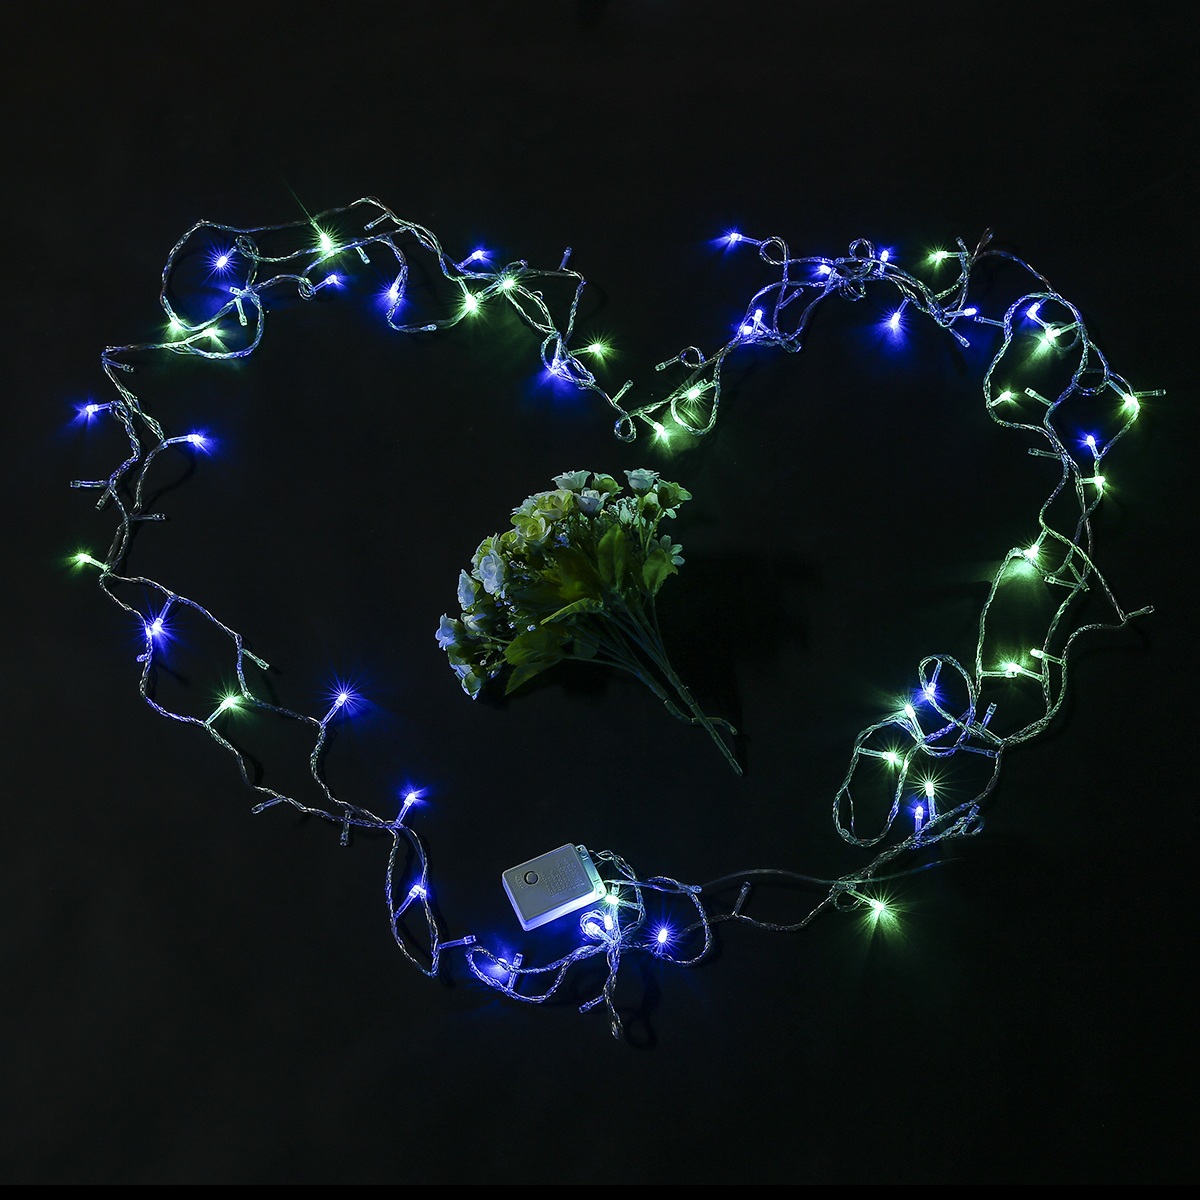 Target Led String Lights Usd 3 : 10M 100 LED Christmas Wedding Xmas Party Decor Outdoor Fairy String Light Lamp eBay